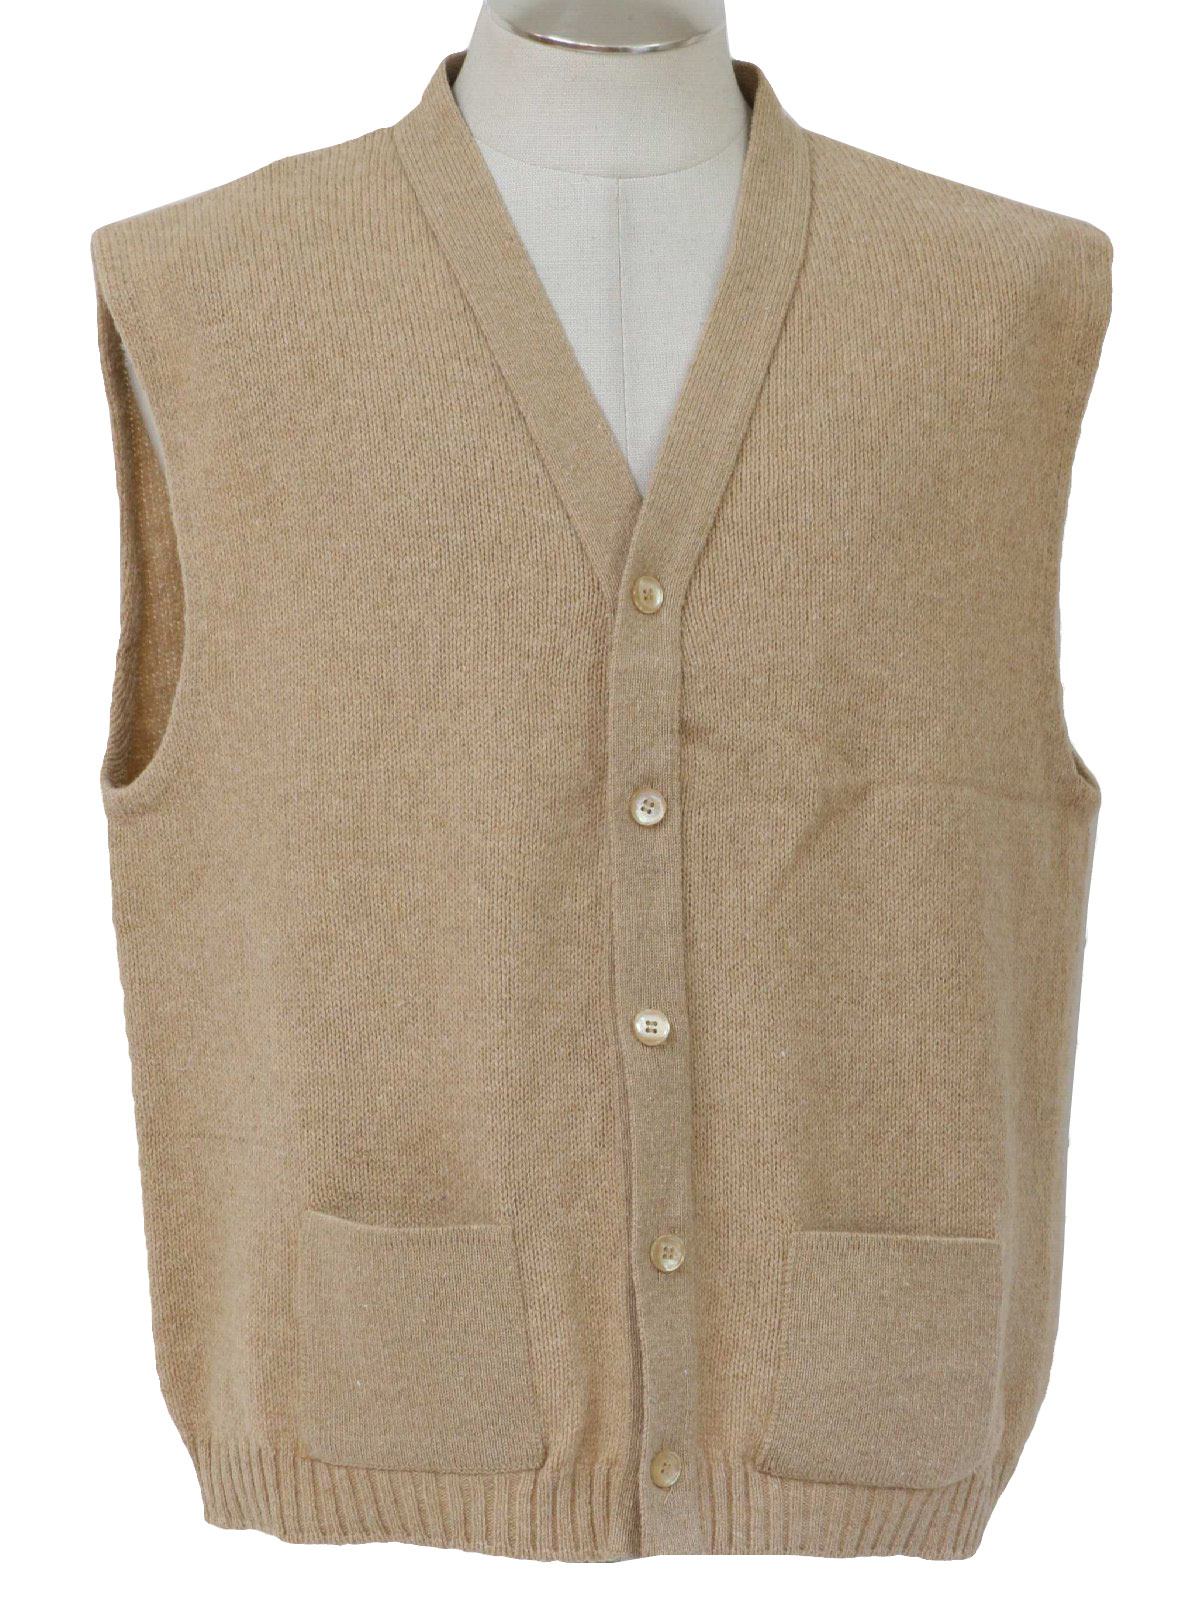 60's Sweater: 60s -no label- Mens light tan acrylic sweater vest ...